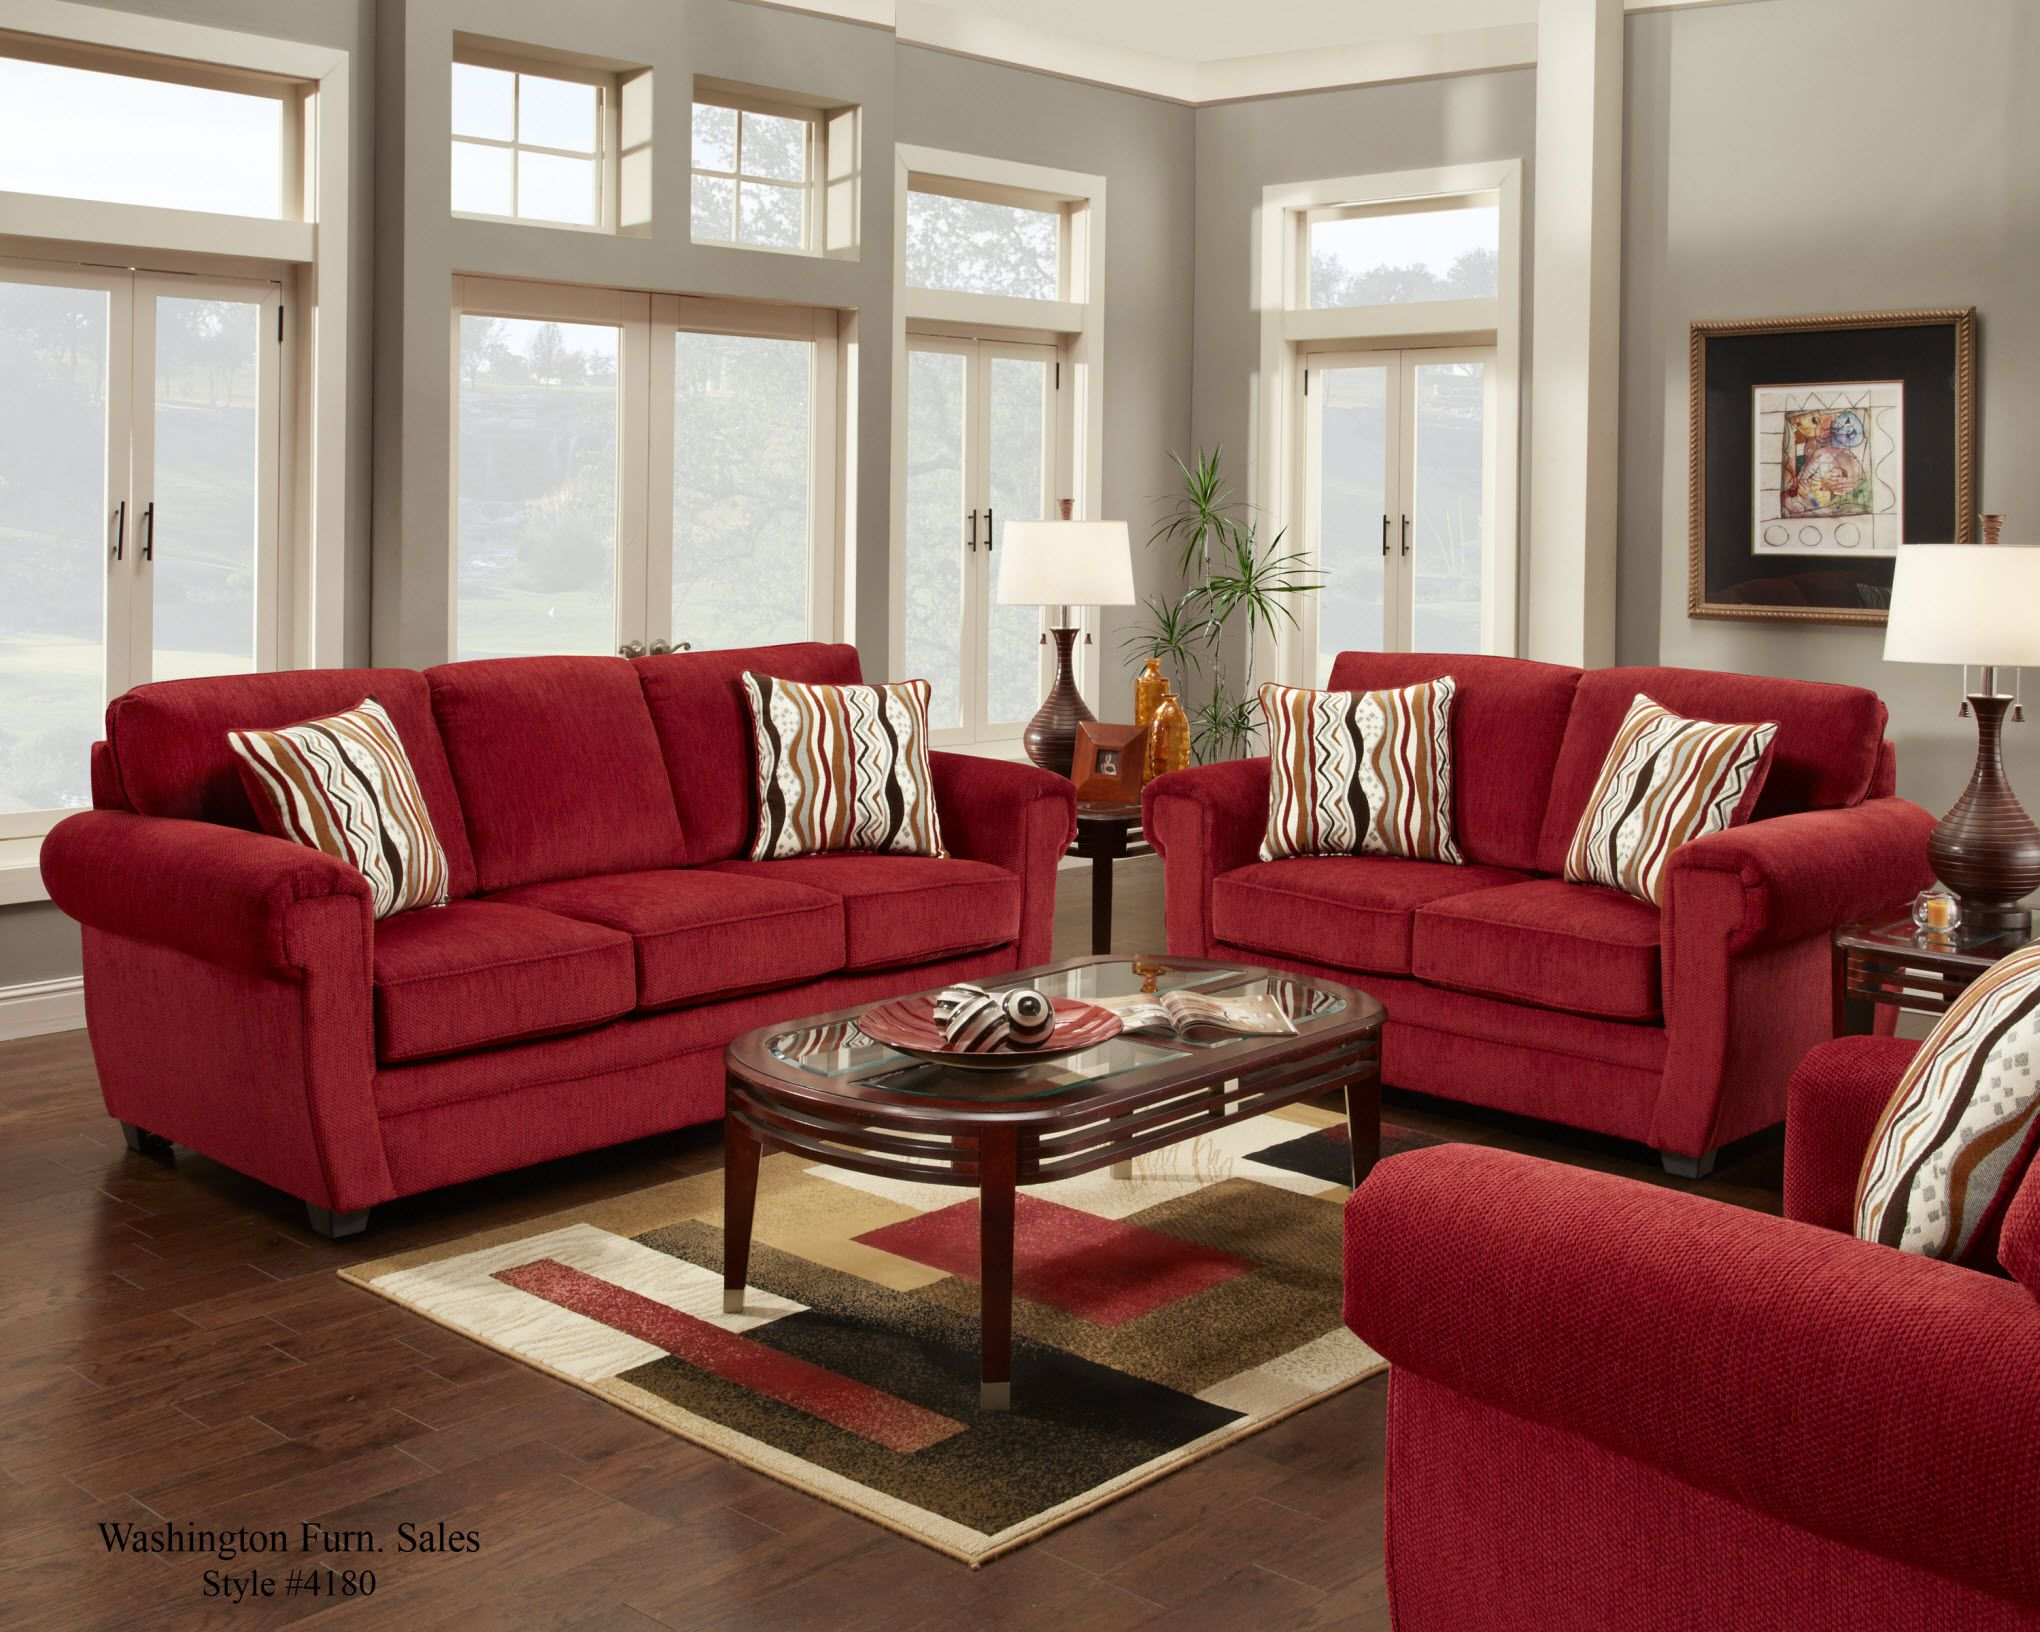 4180 washington samson red sofa and loveseat www Living room ideas with red sofa